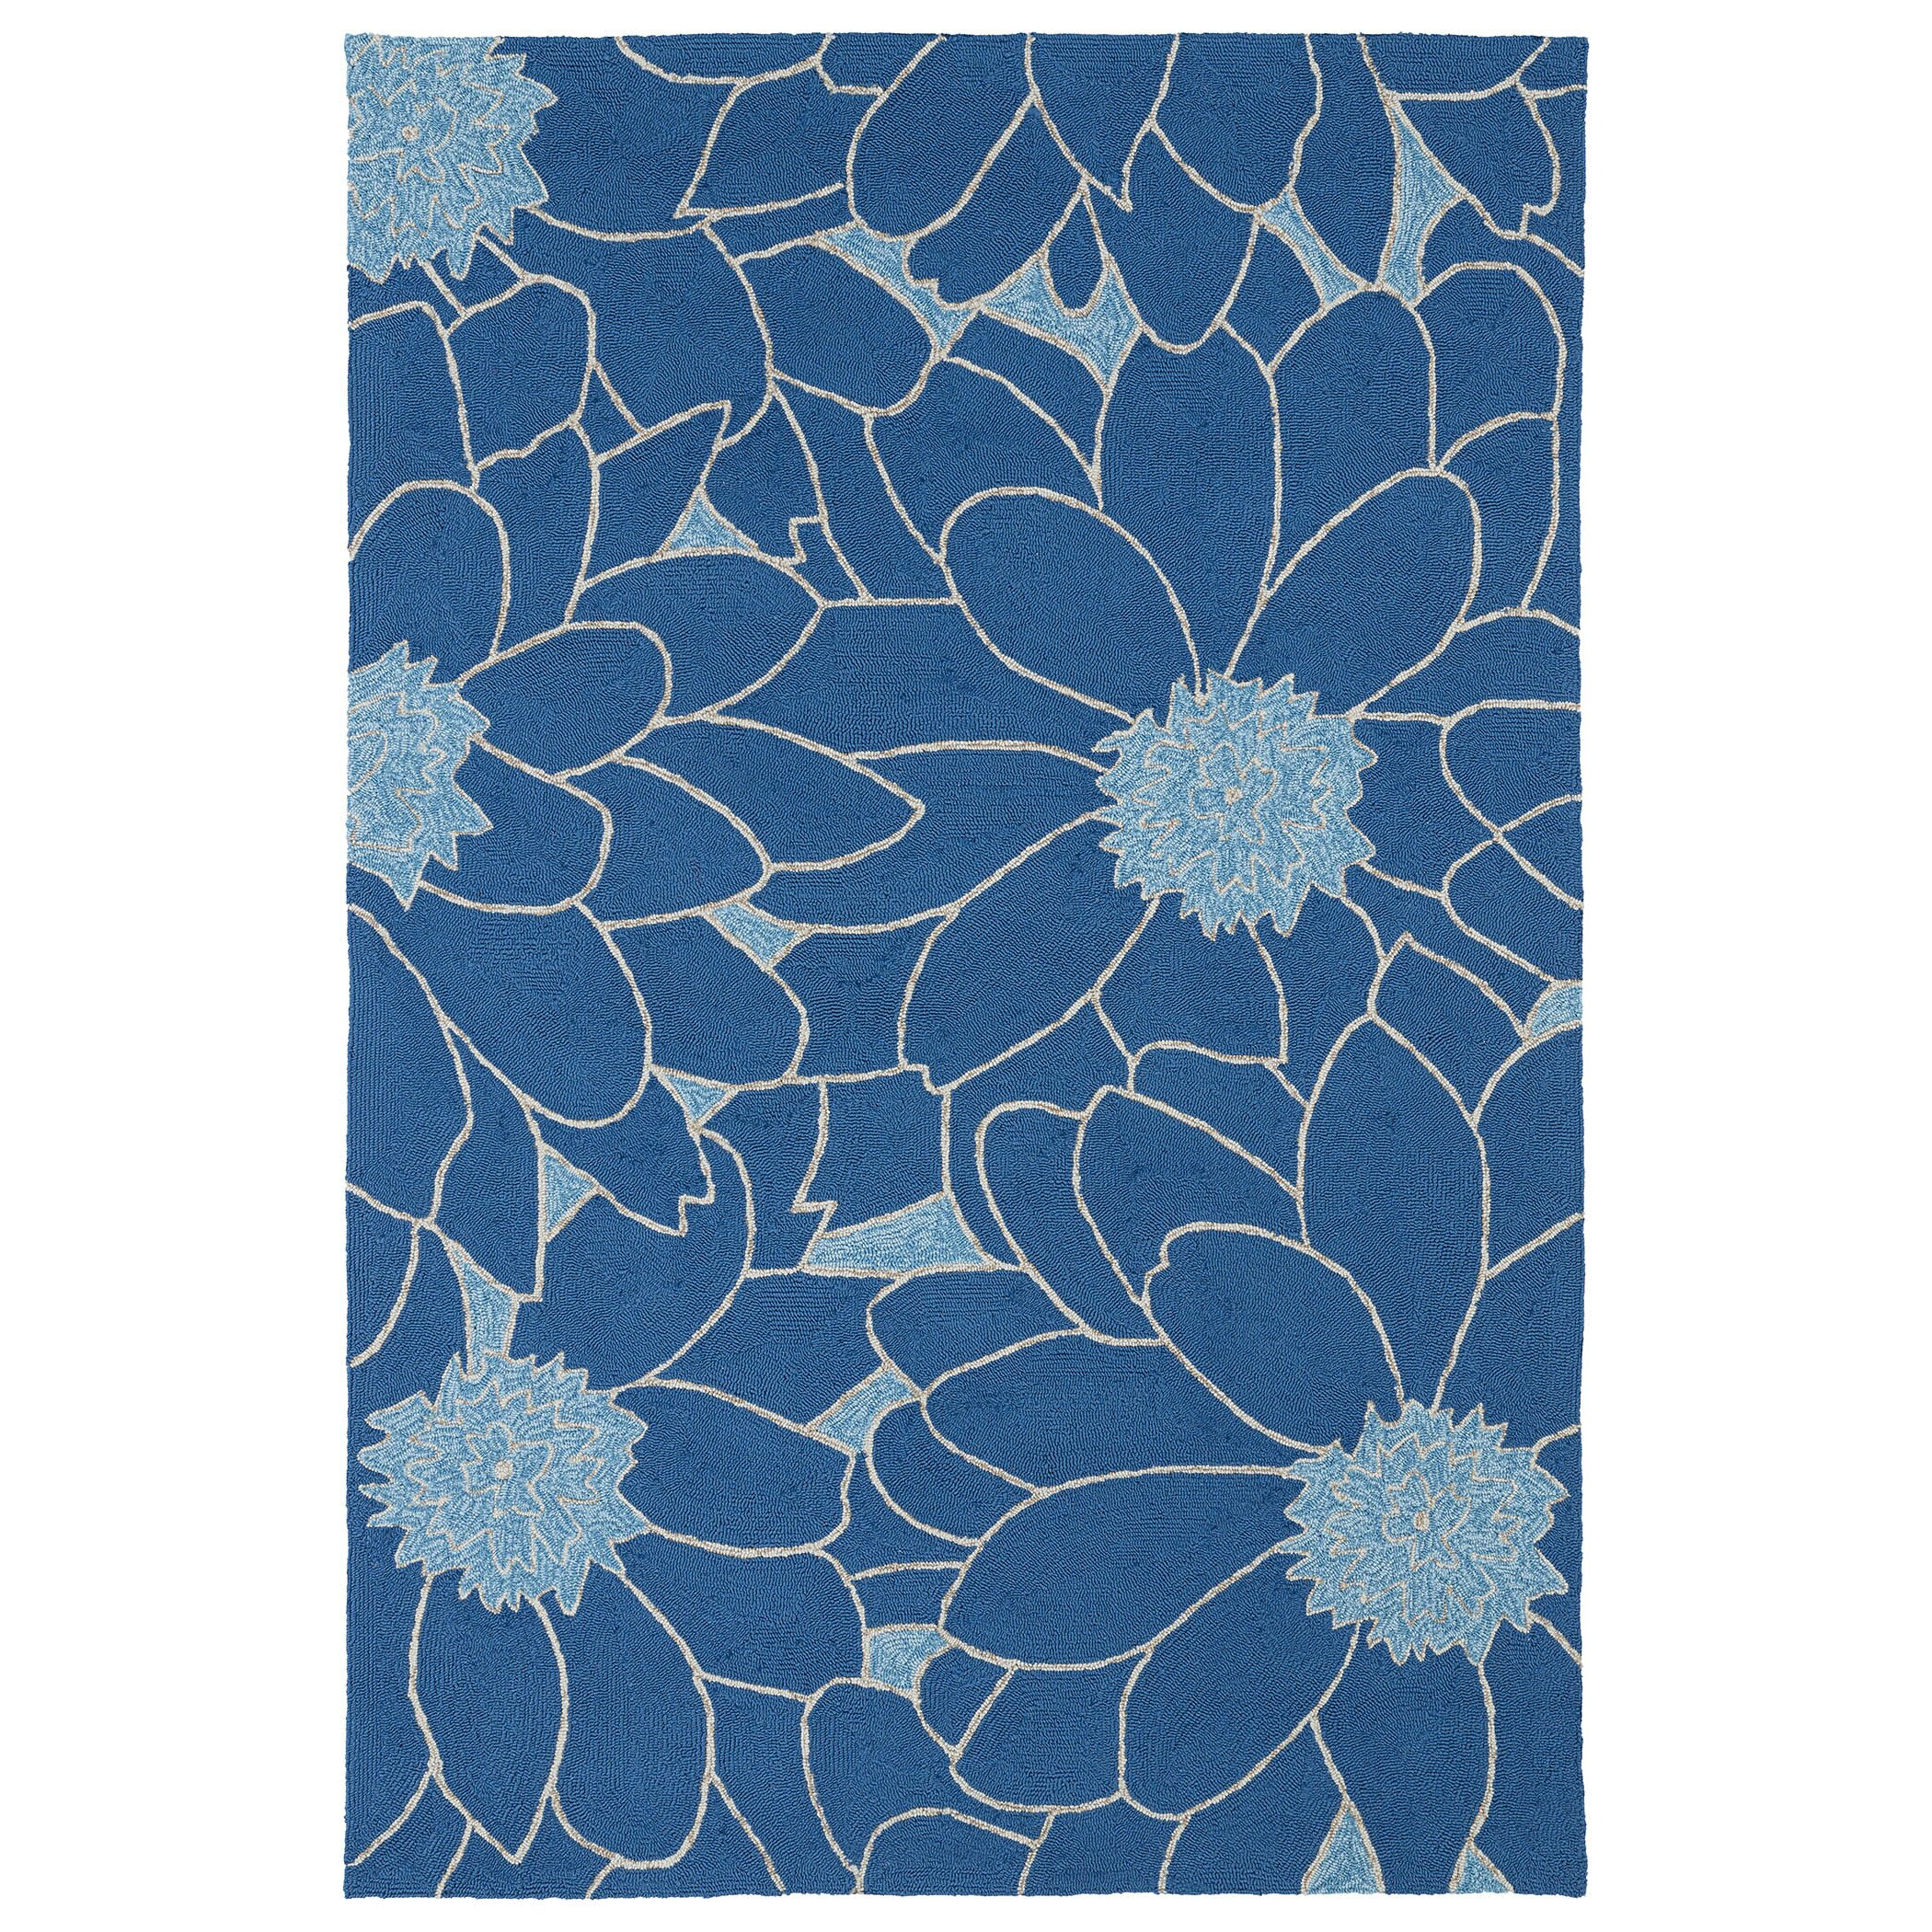 Kaleen home and porch blue indoor outdoor area rug for Blue indoor outdoor rug